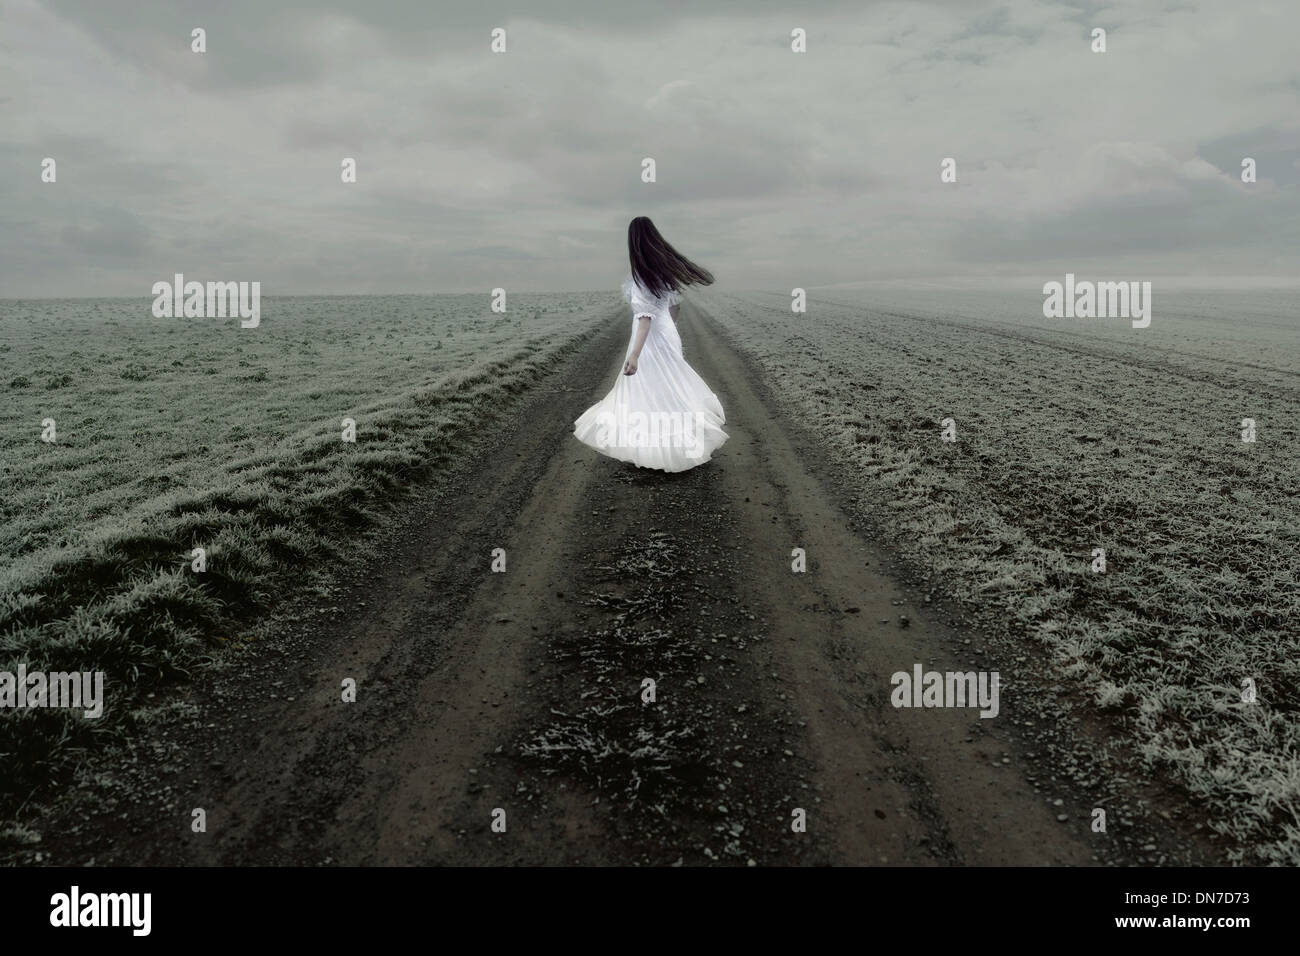 Woman in white dress stands alone on a dirt road - Stock Image